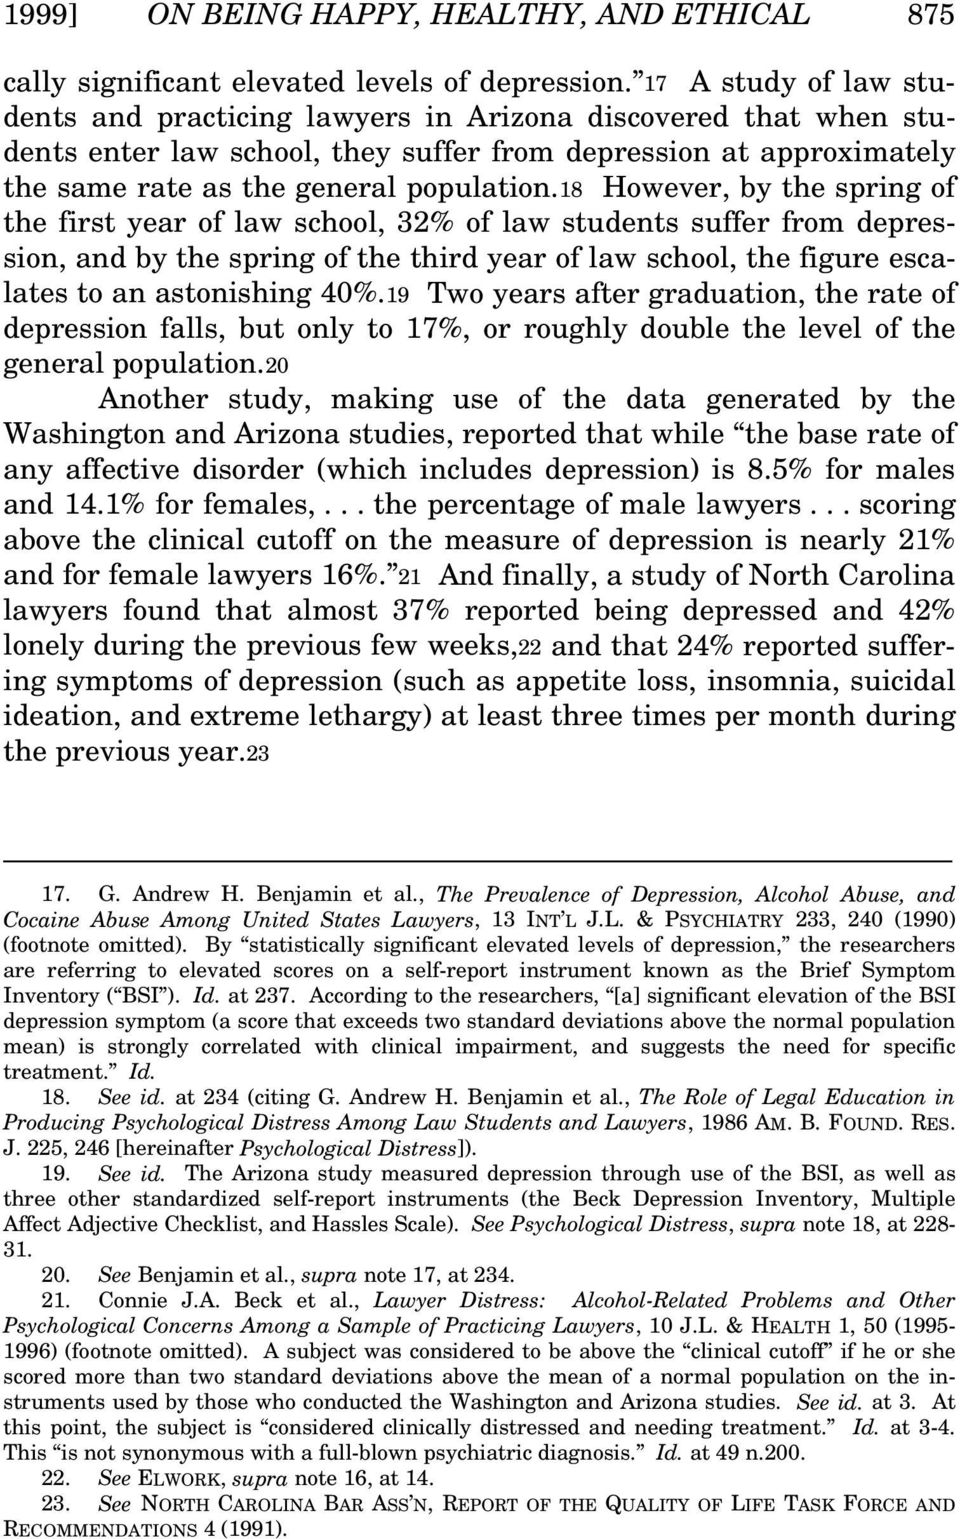 18 However, by the spring of the first year of law school, 32% of law students suffer from depression, and by the spring of the third year of law school, the figure escalates to an astonishing 40%.